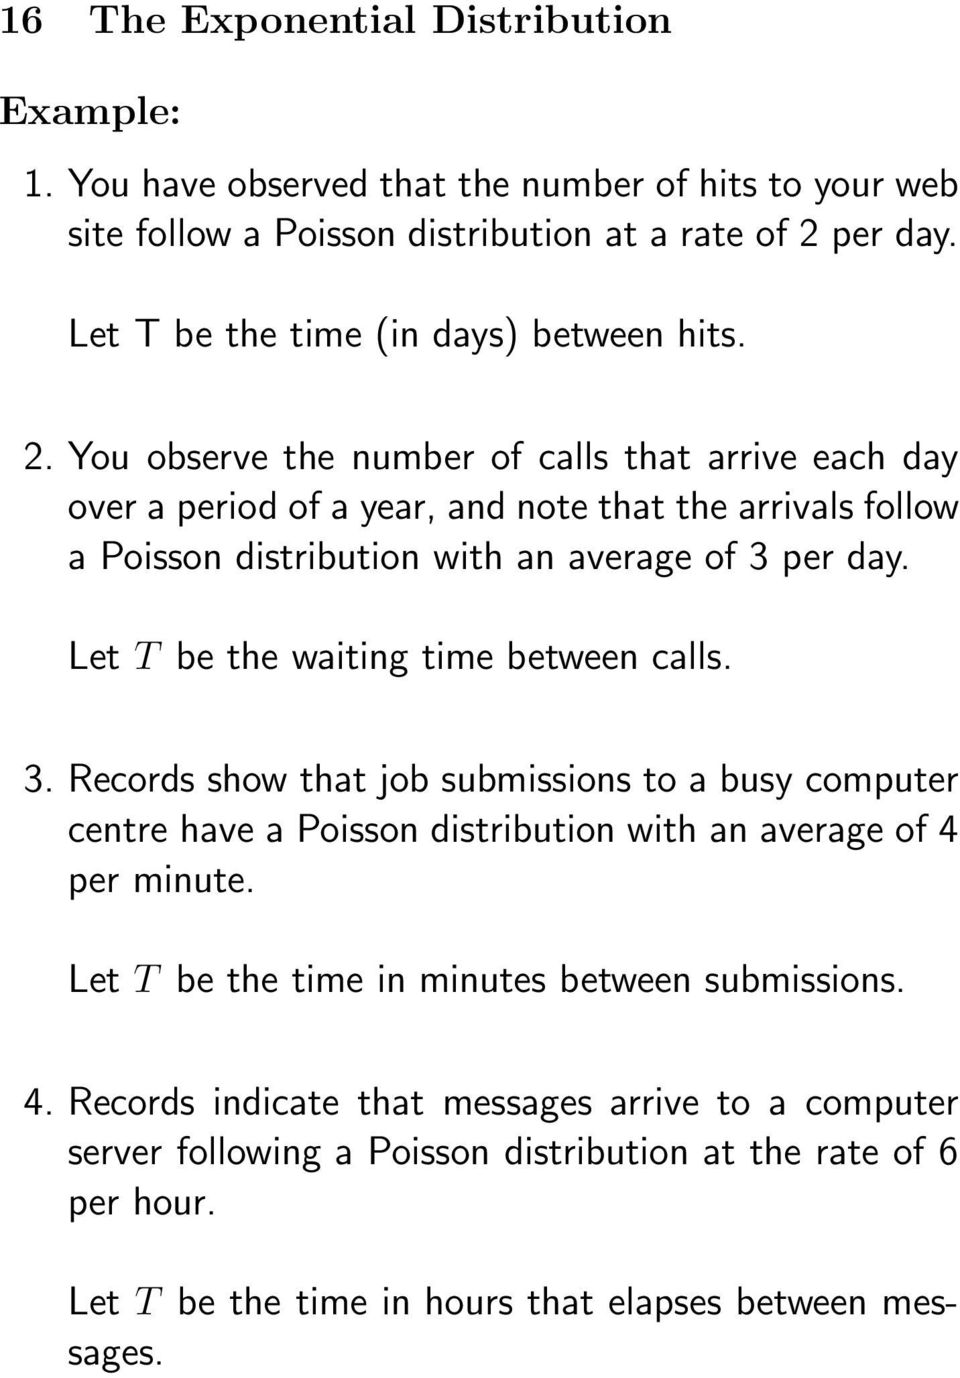 You observe the number of calls that arrive each day over a period of a year, and note that the arrivals follow a Poisson distribution with an average of 3 per day.